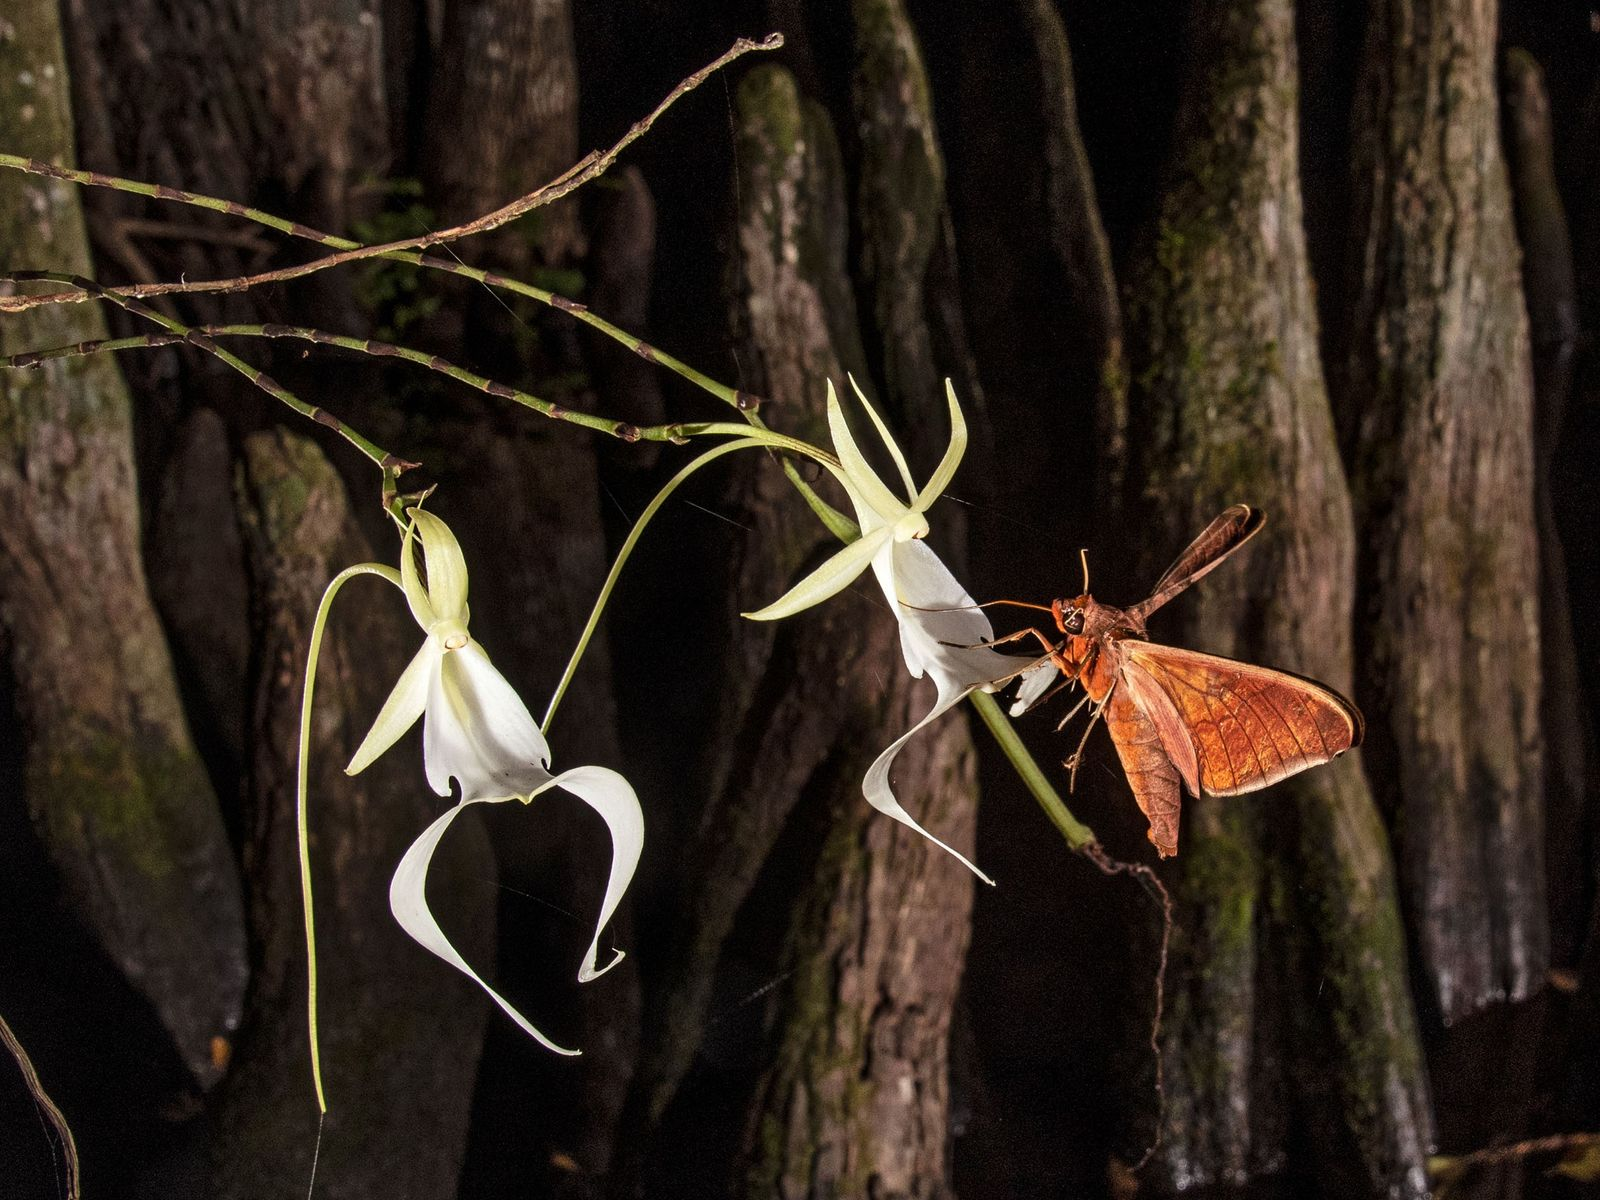 Moths pollinating rare ghost orchids.